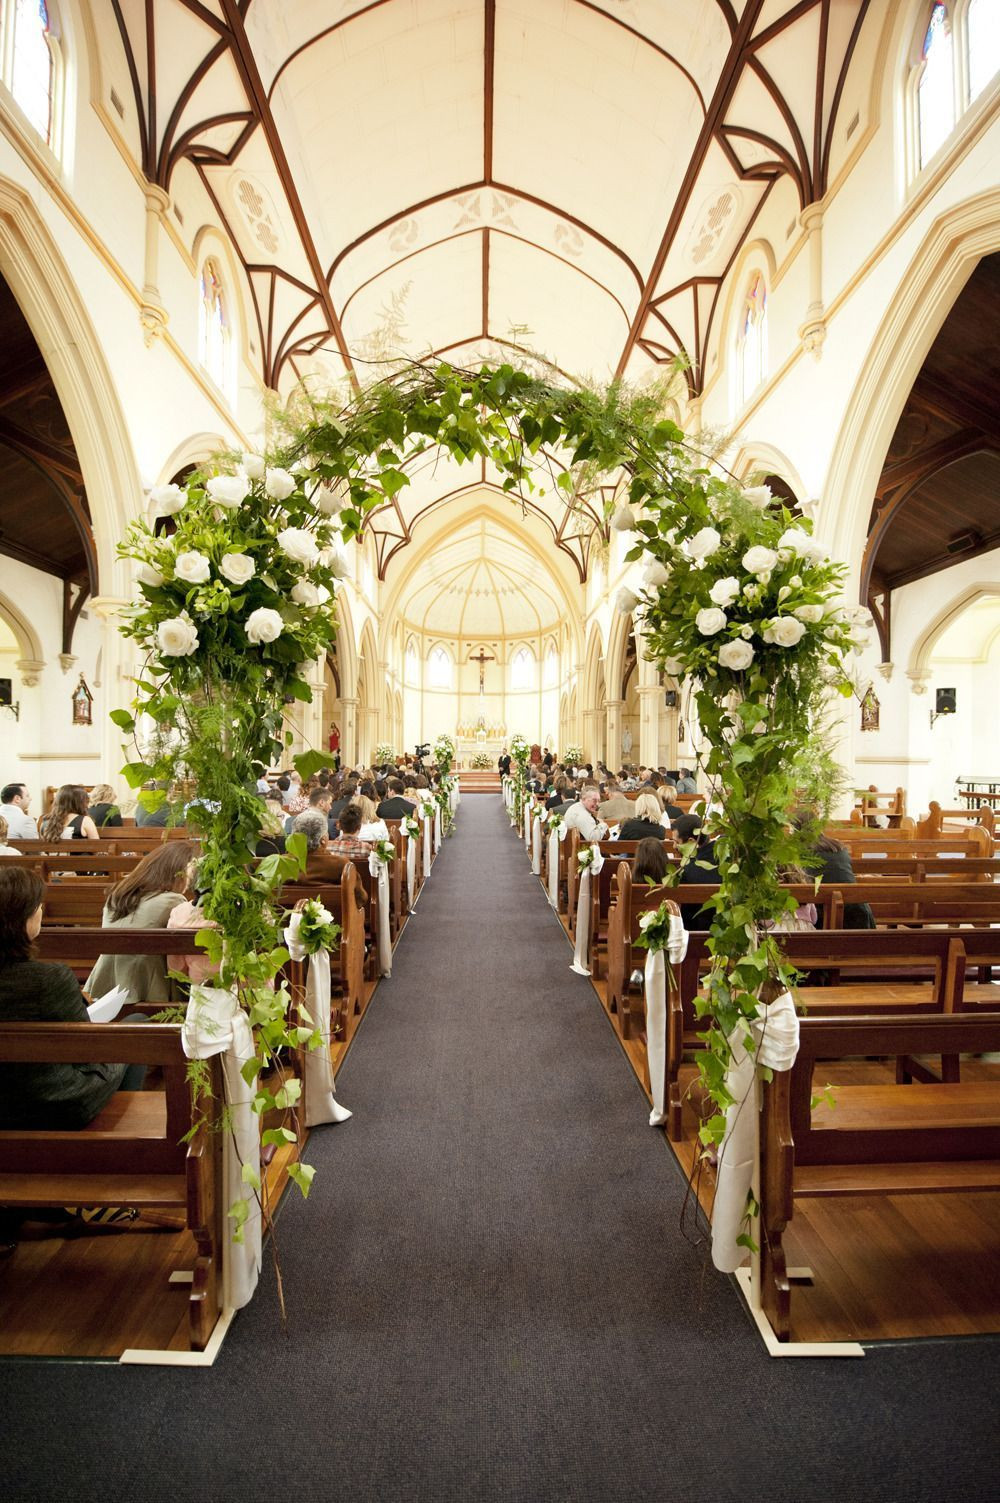 DIY Church Wedding Decorations  A Floral Arch IN the church love this wedding ceremony